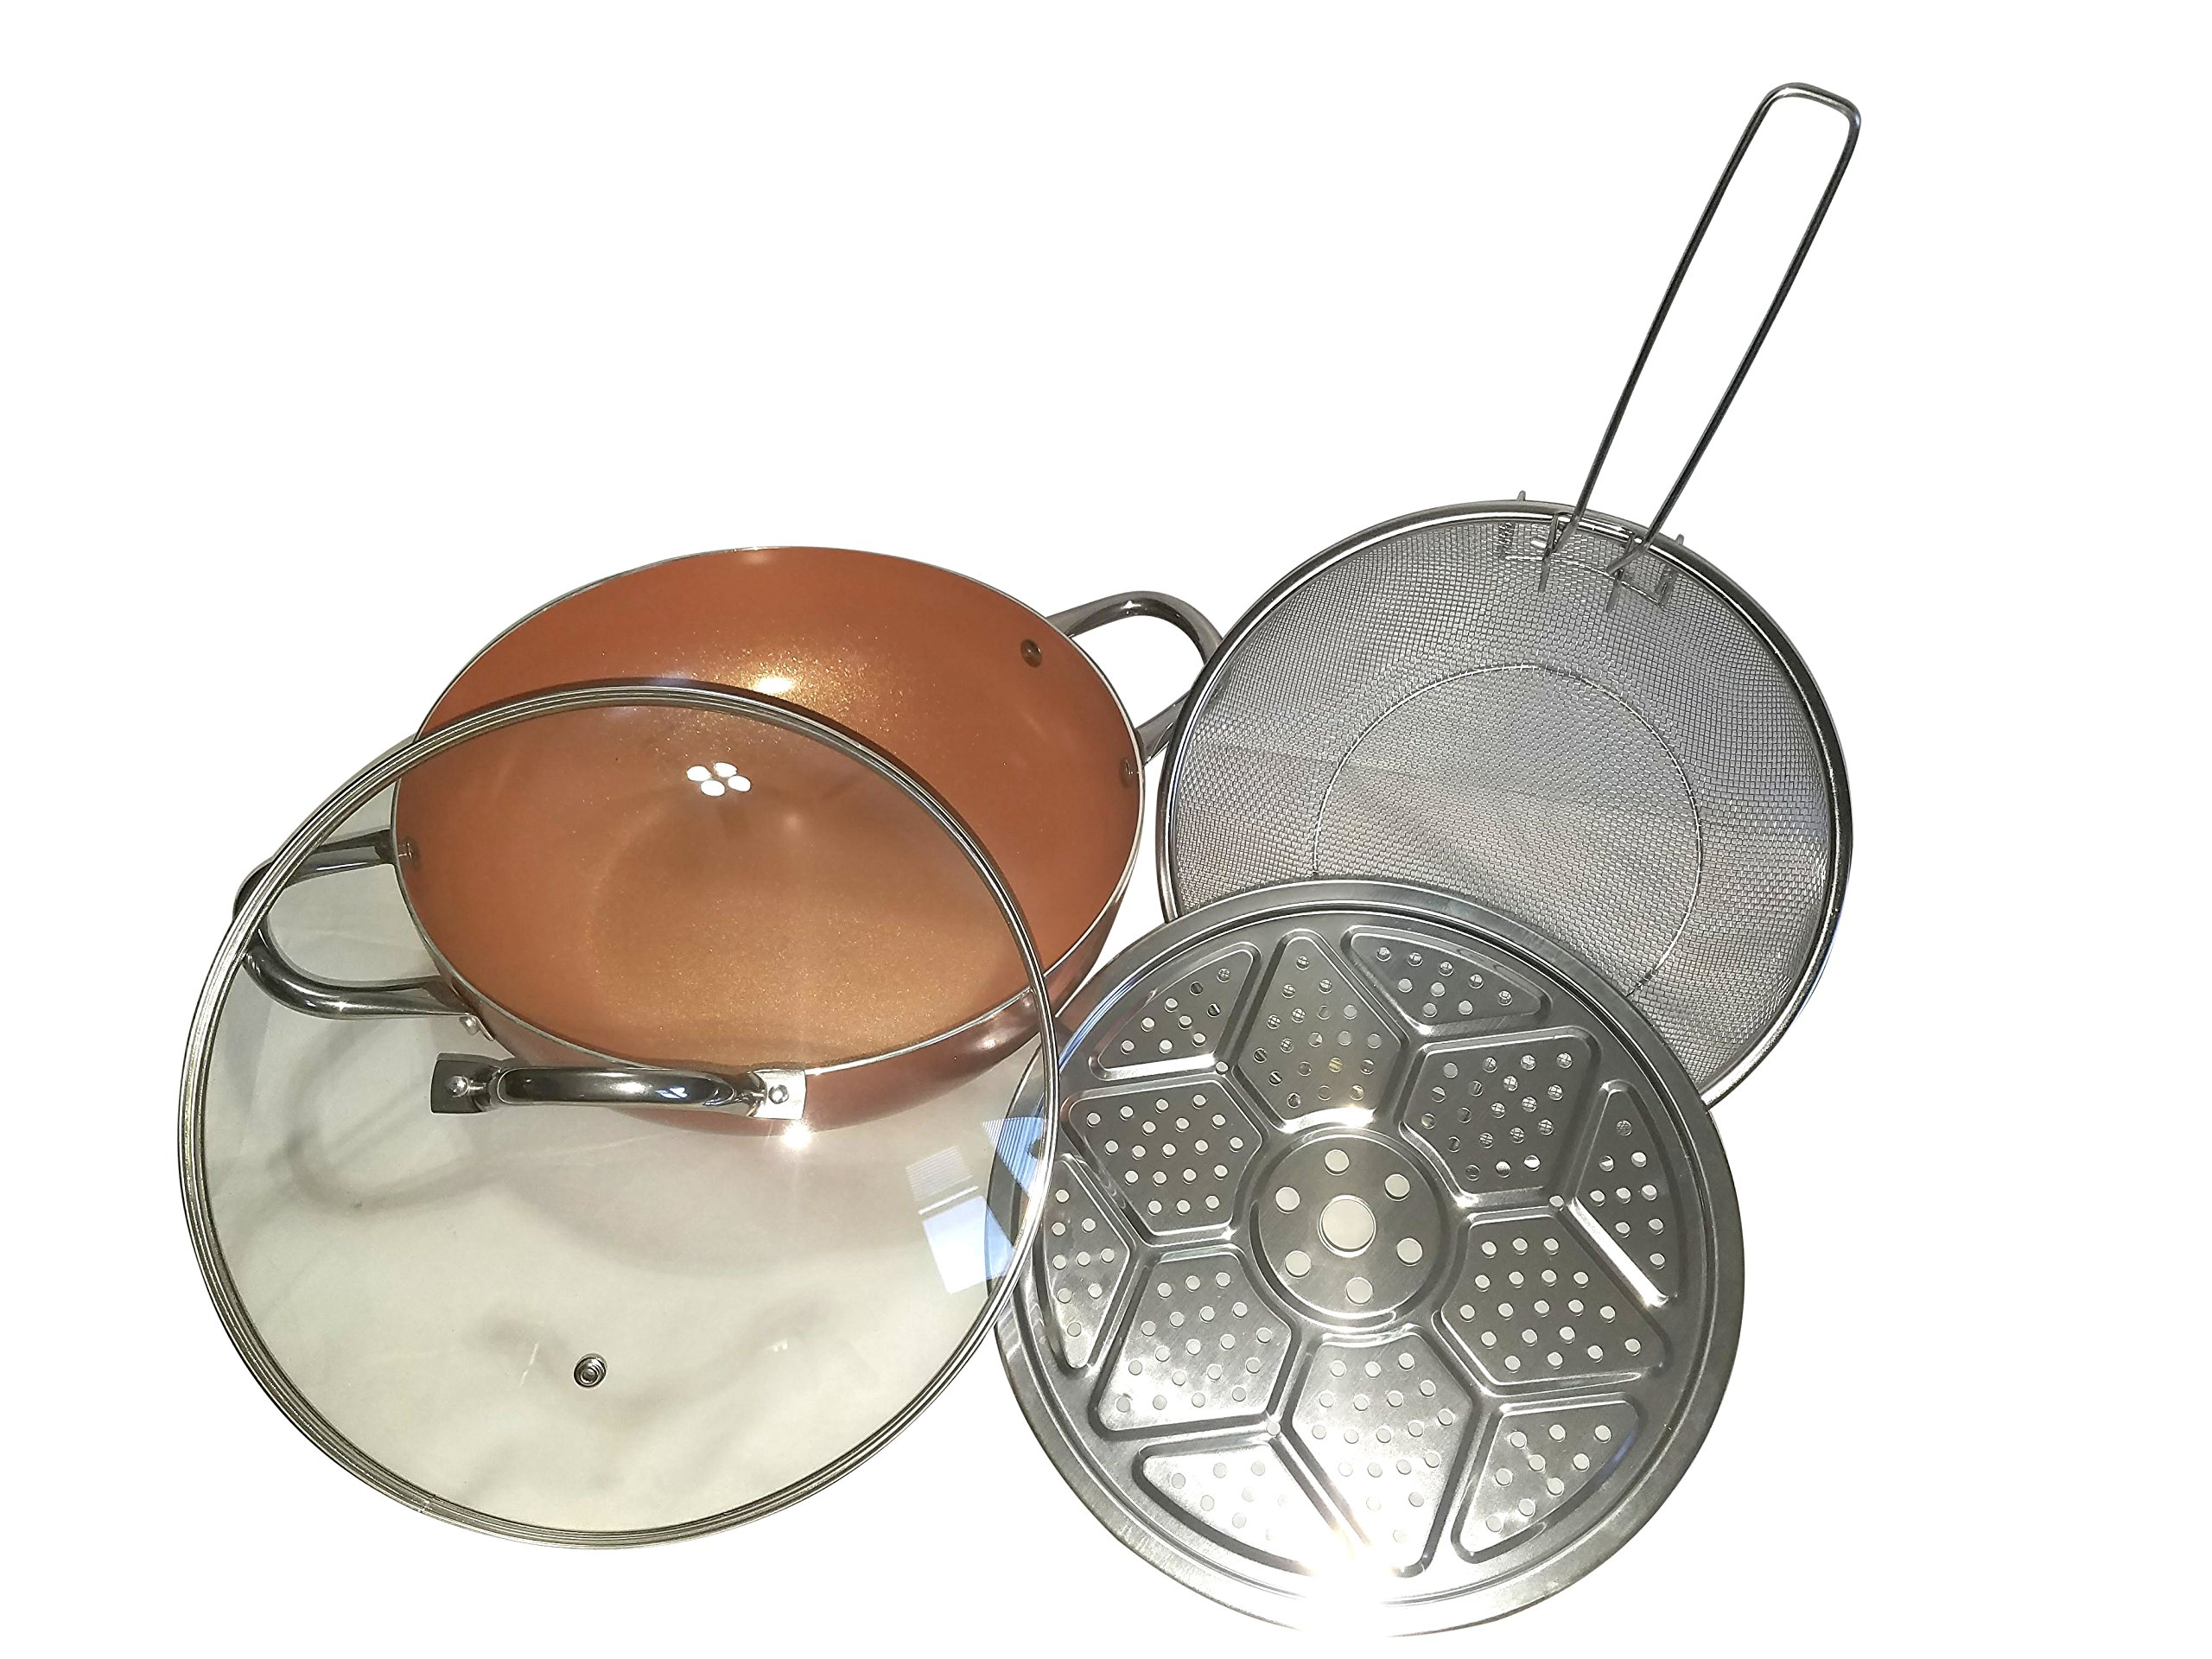 Copper Wok XL 12 Inch Pan 4 Piece Set Non Stick Ceramic Coating Induction Base Tempered Glass Lid